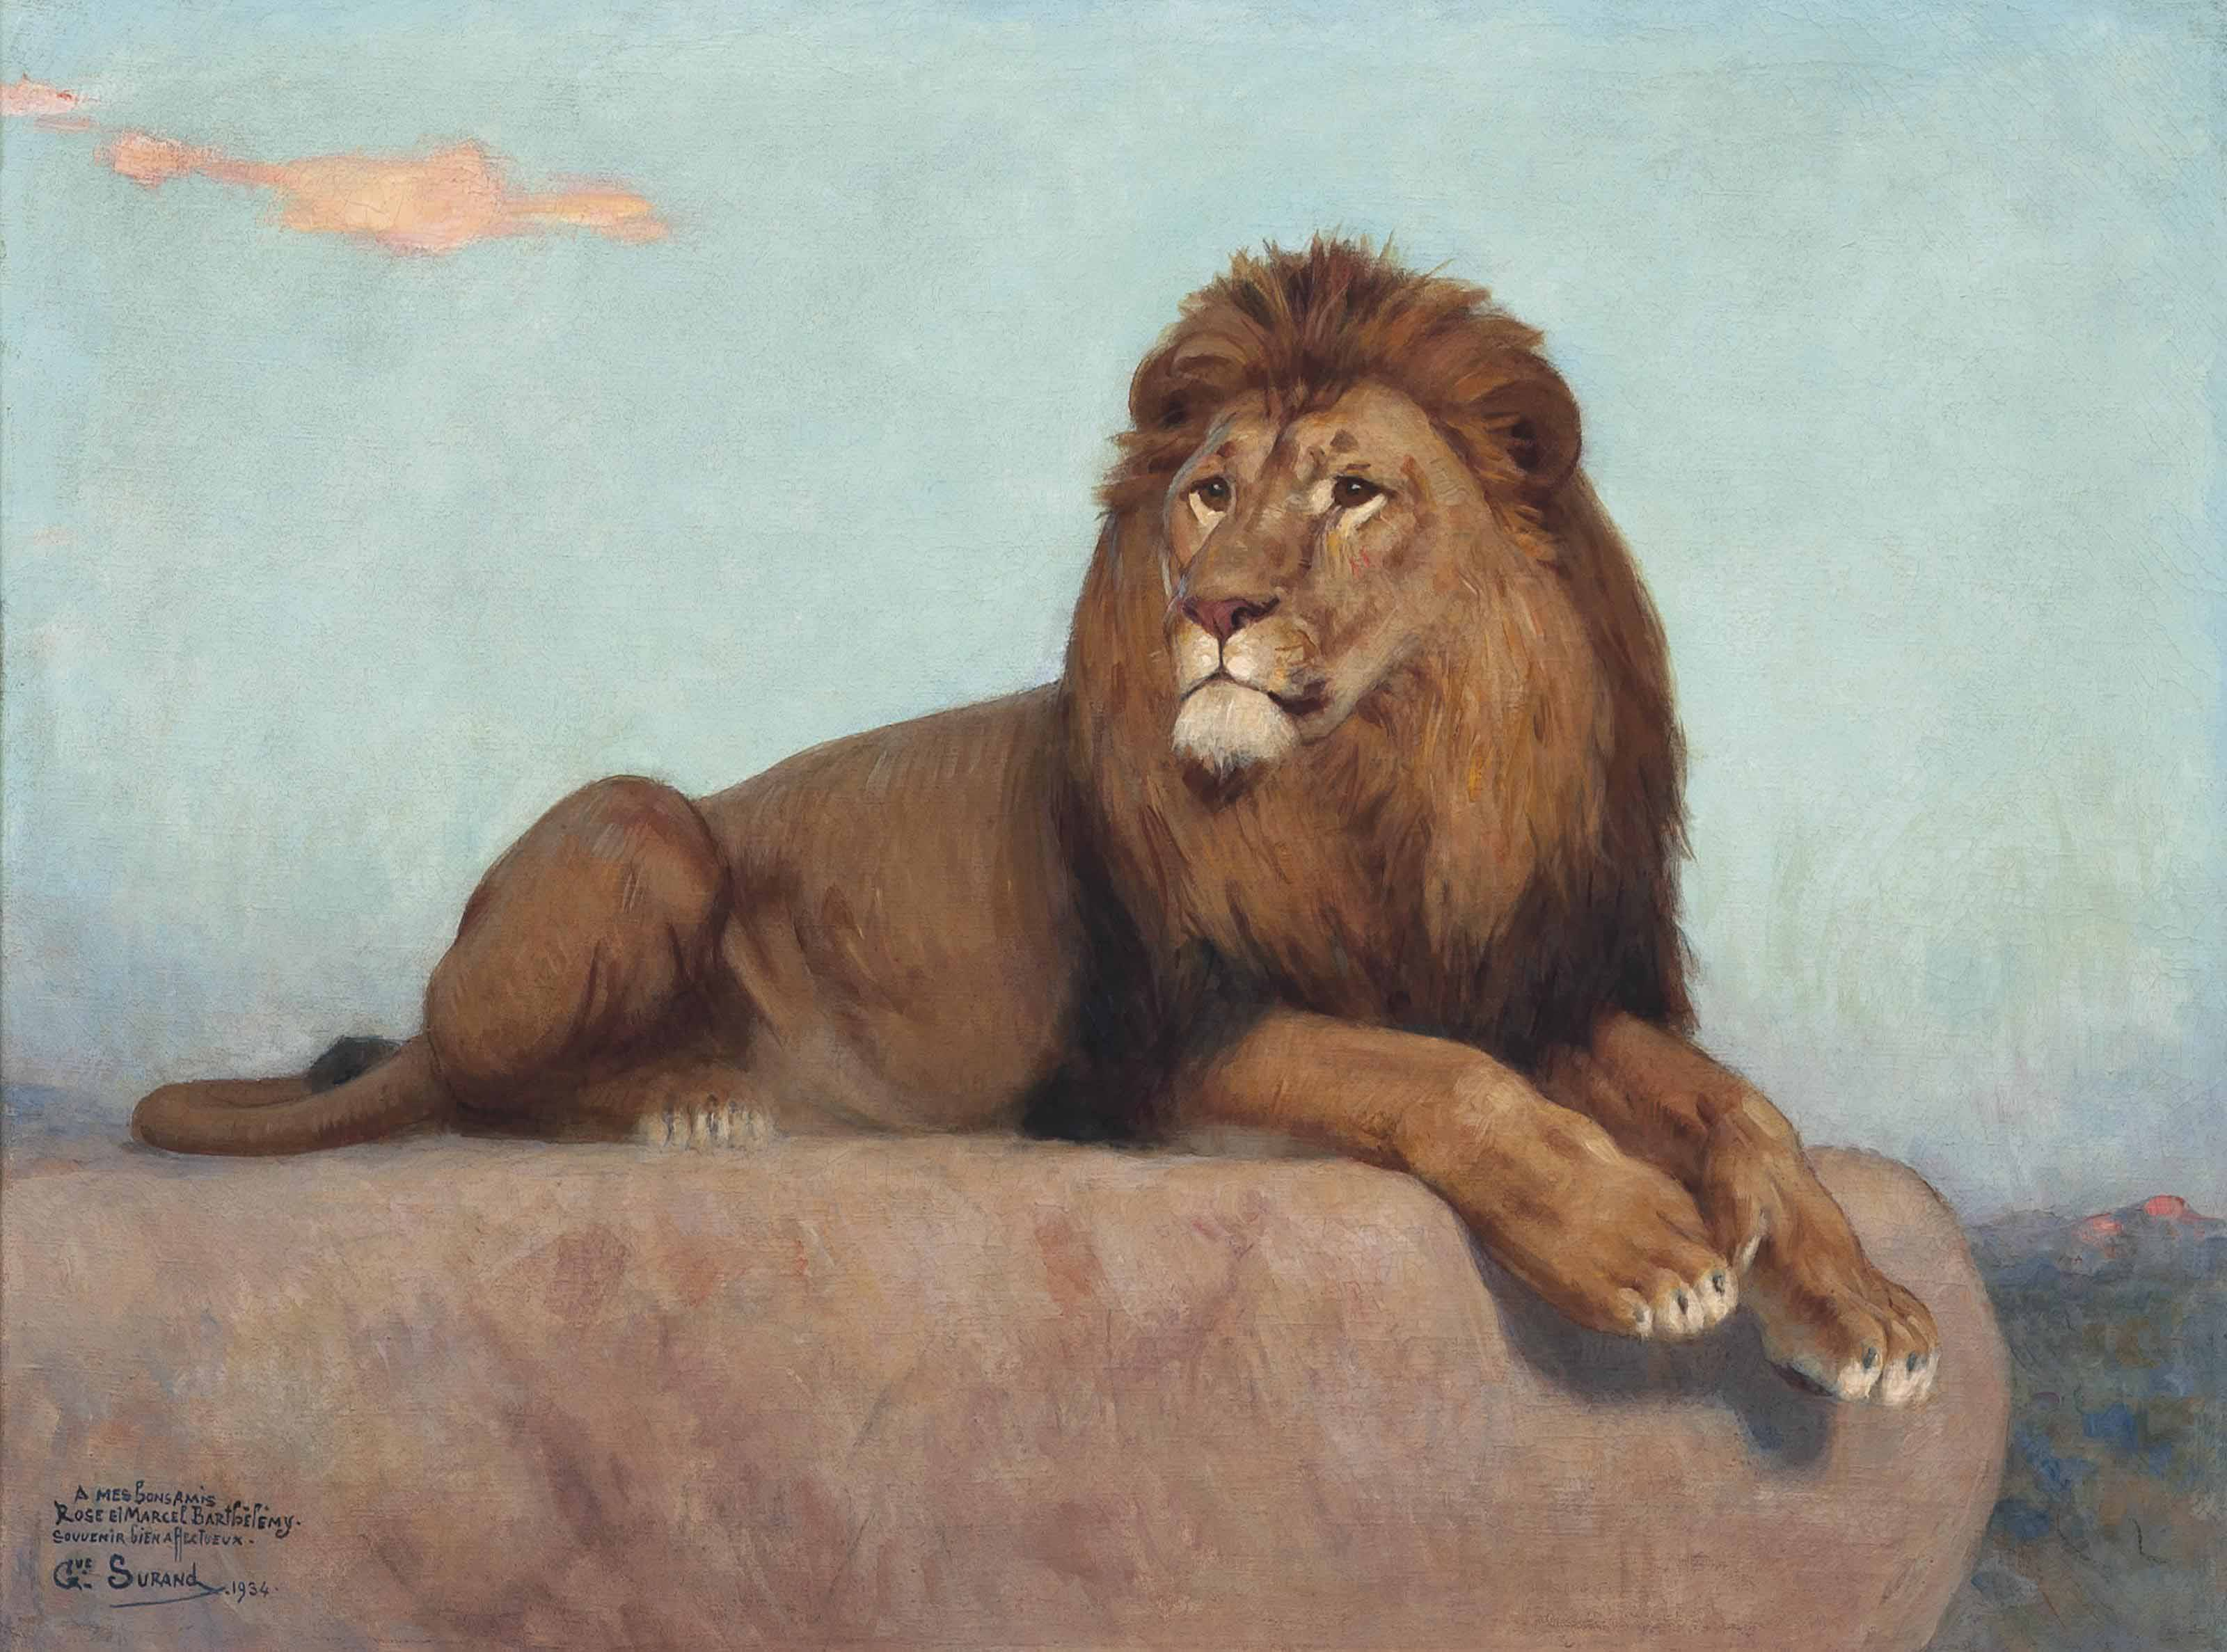 Gustave Surand (FRENCH, 1860-1937) , A Lion